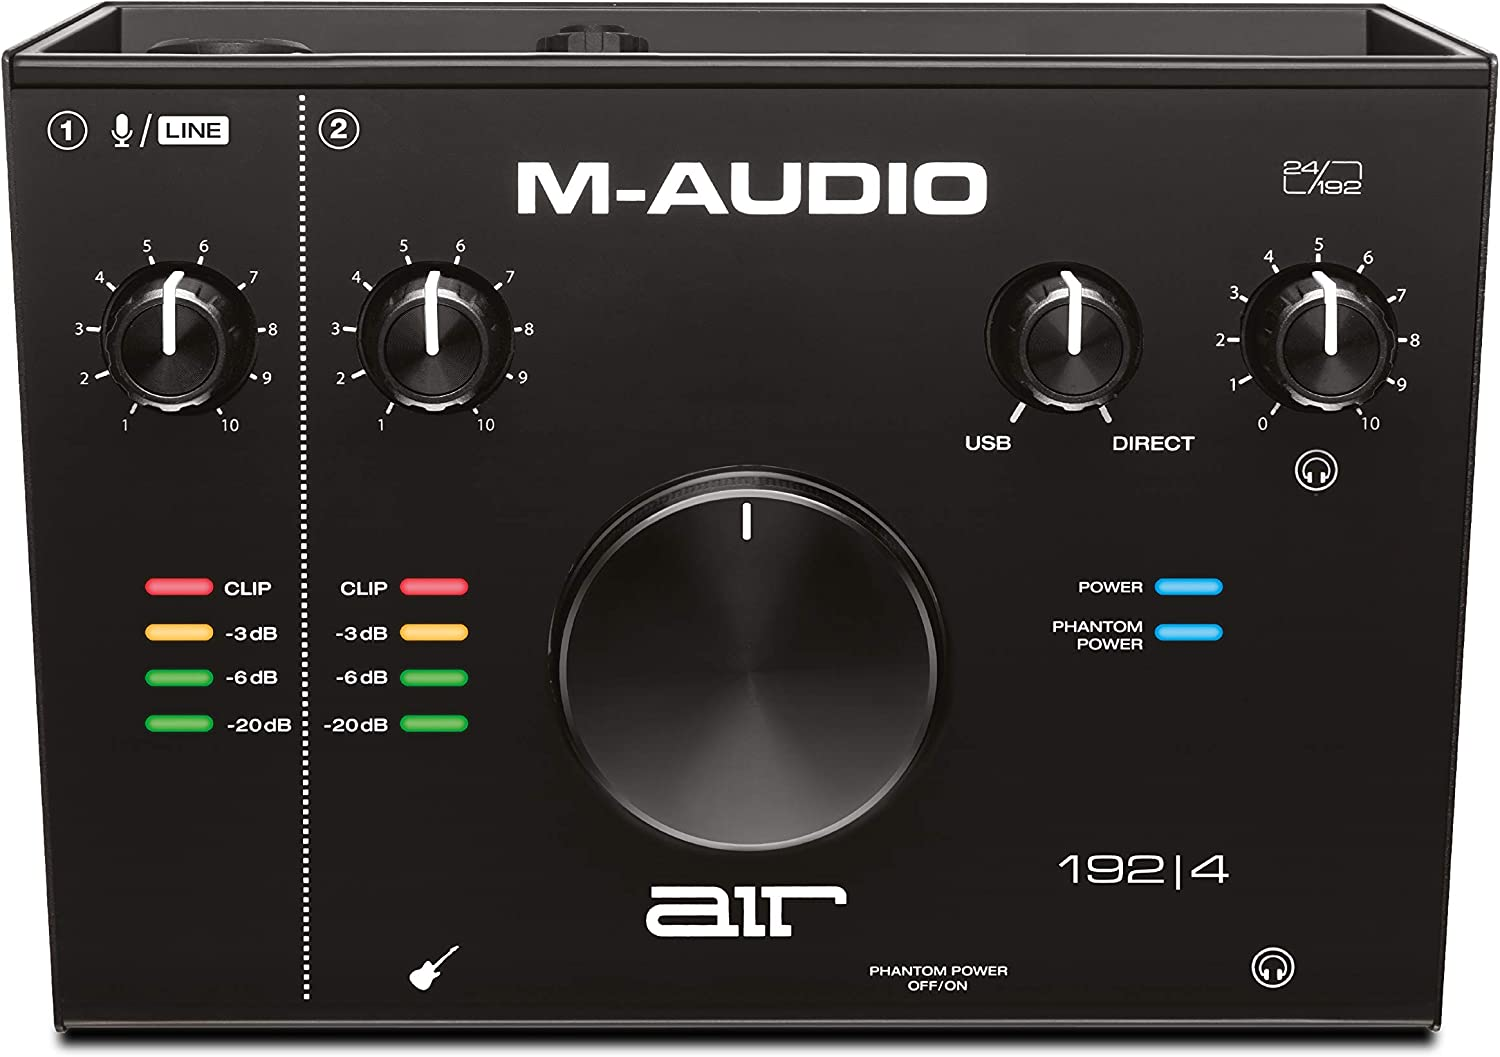 M-Audio AIR 192|4 — 2-In/2-Out USB Audio Interface with Recording Software from ProTools & Ableton Live, Plus Studio-Grade FX & Virtual Instruments